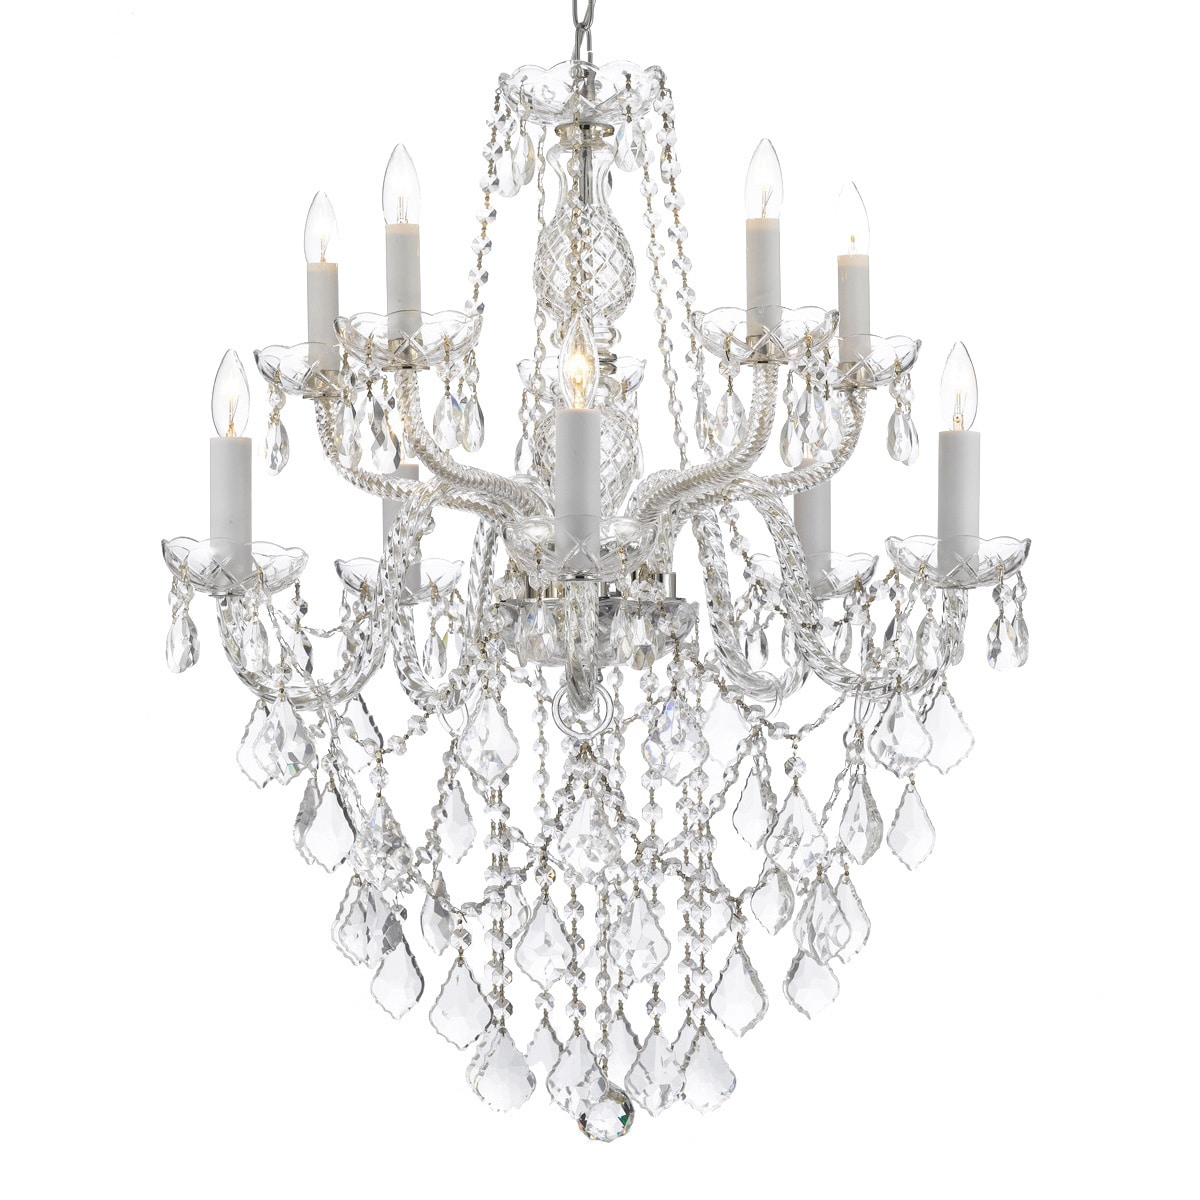 Gallery 10 light crystal chandelier free shipping today gallery 10 light crystal chandelier free shipping today overstock 16018079 arubaitofo Choice Image